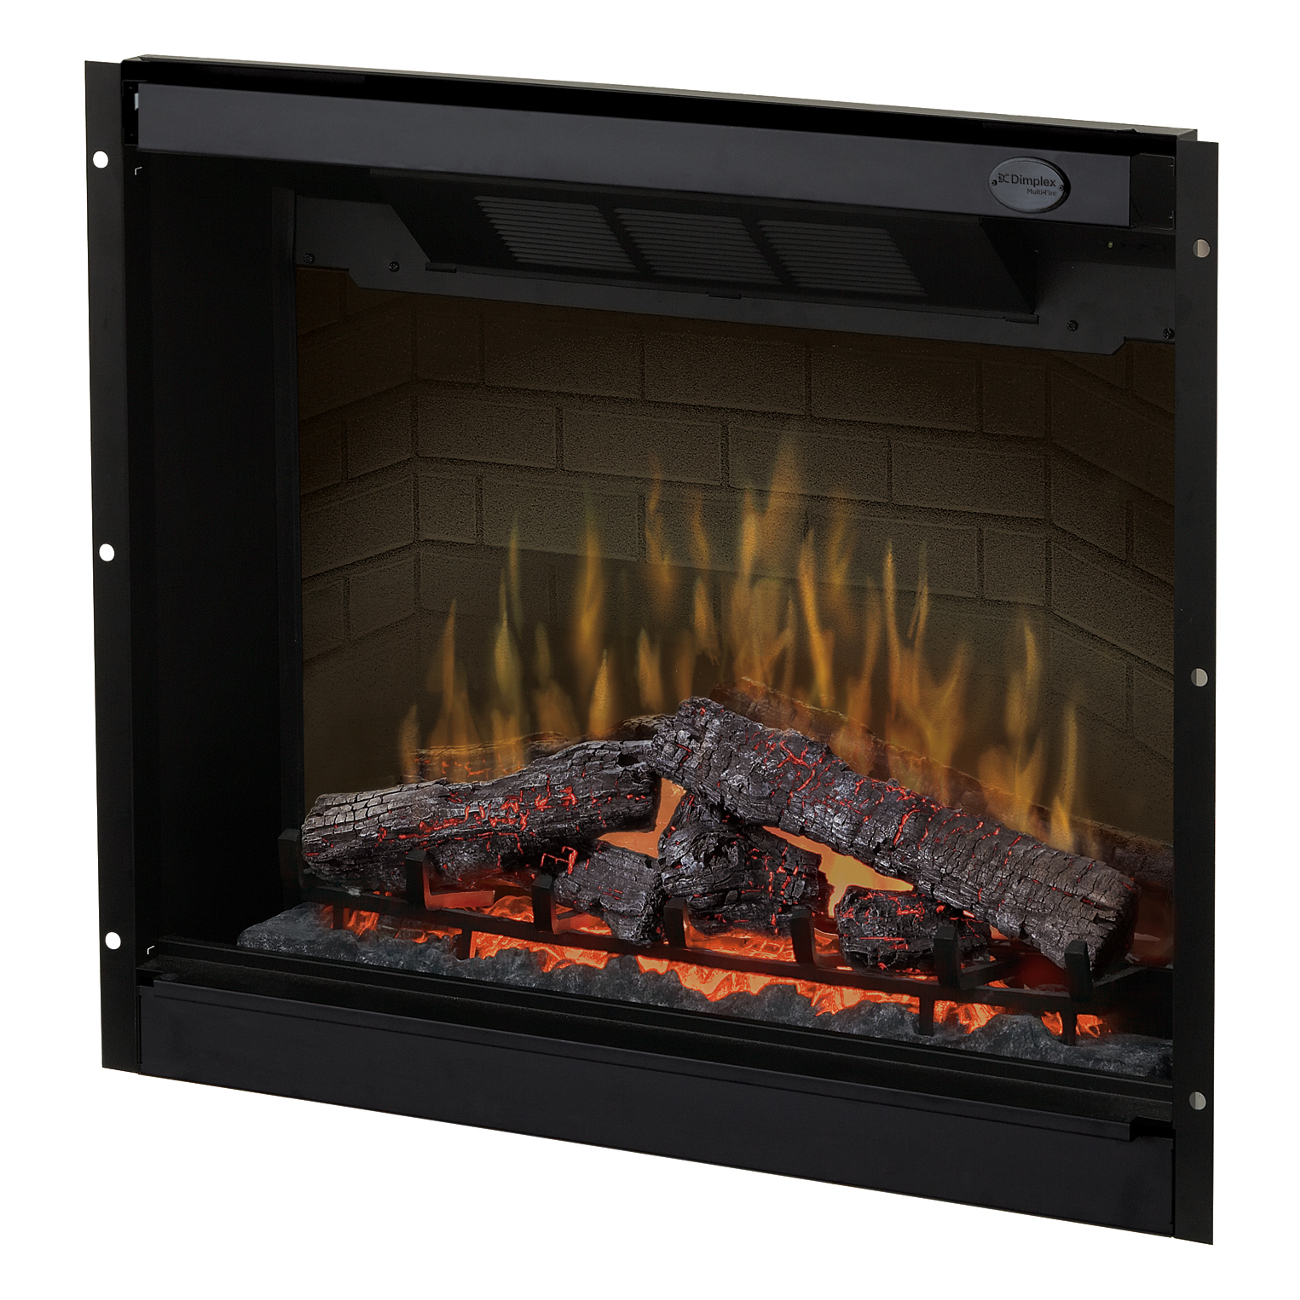 Dimplex Df3215 Electric Fireplace Insert